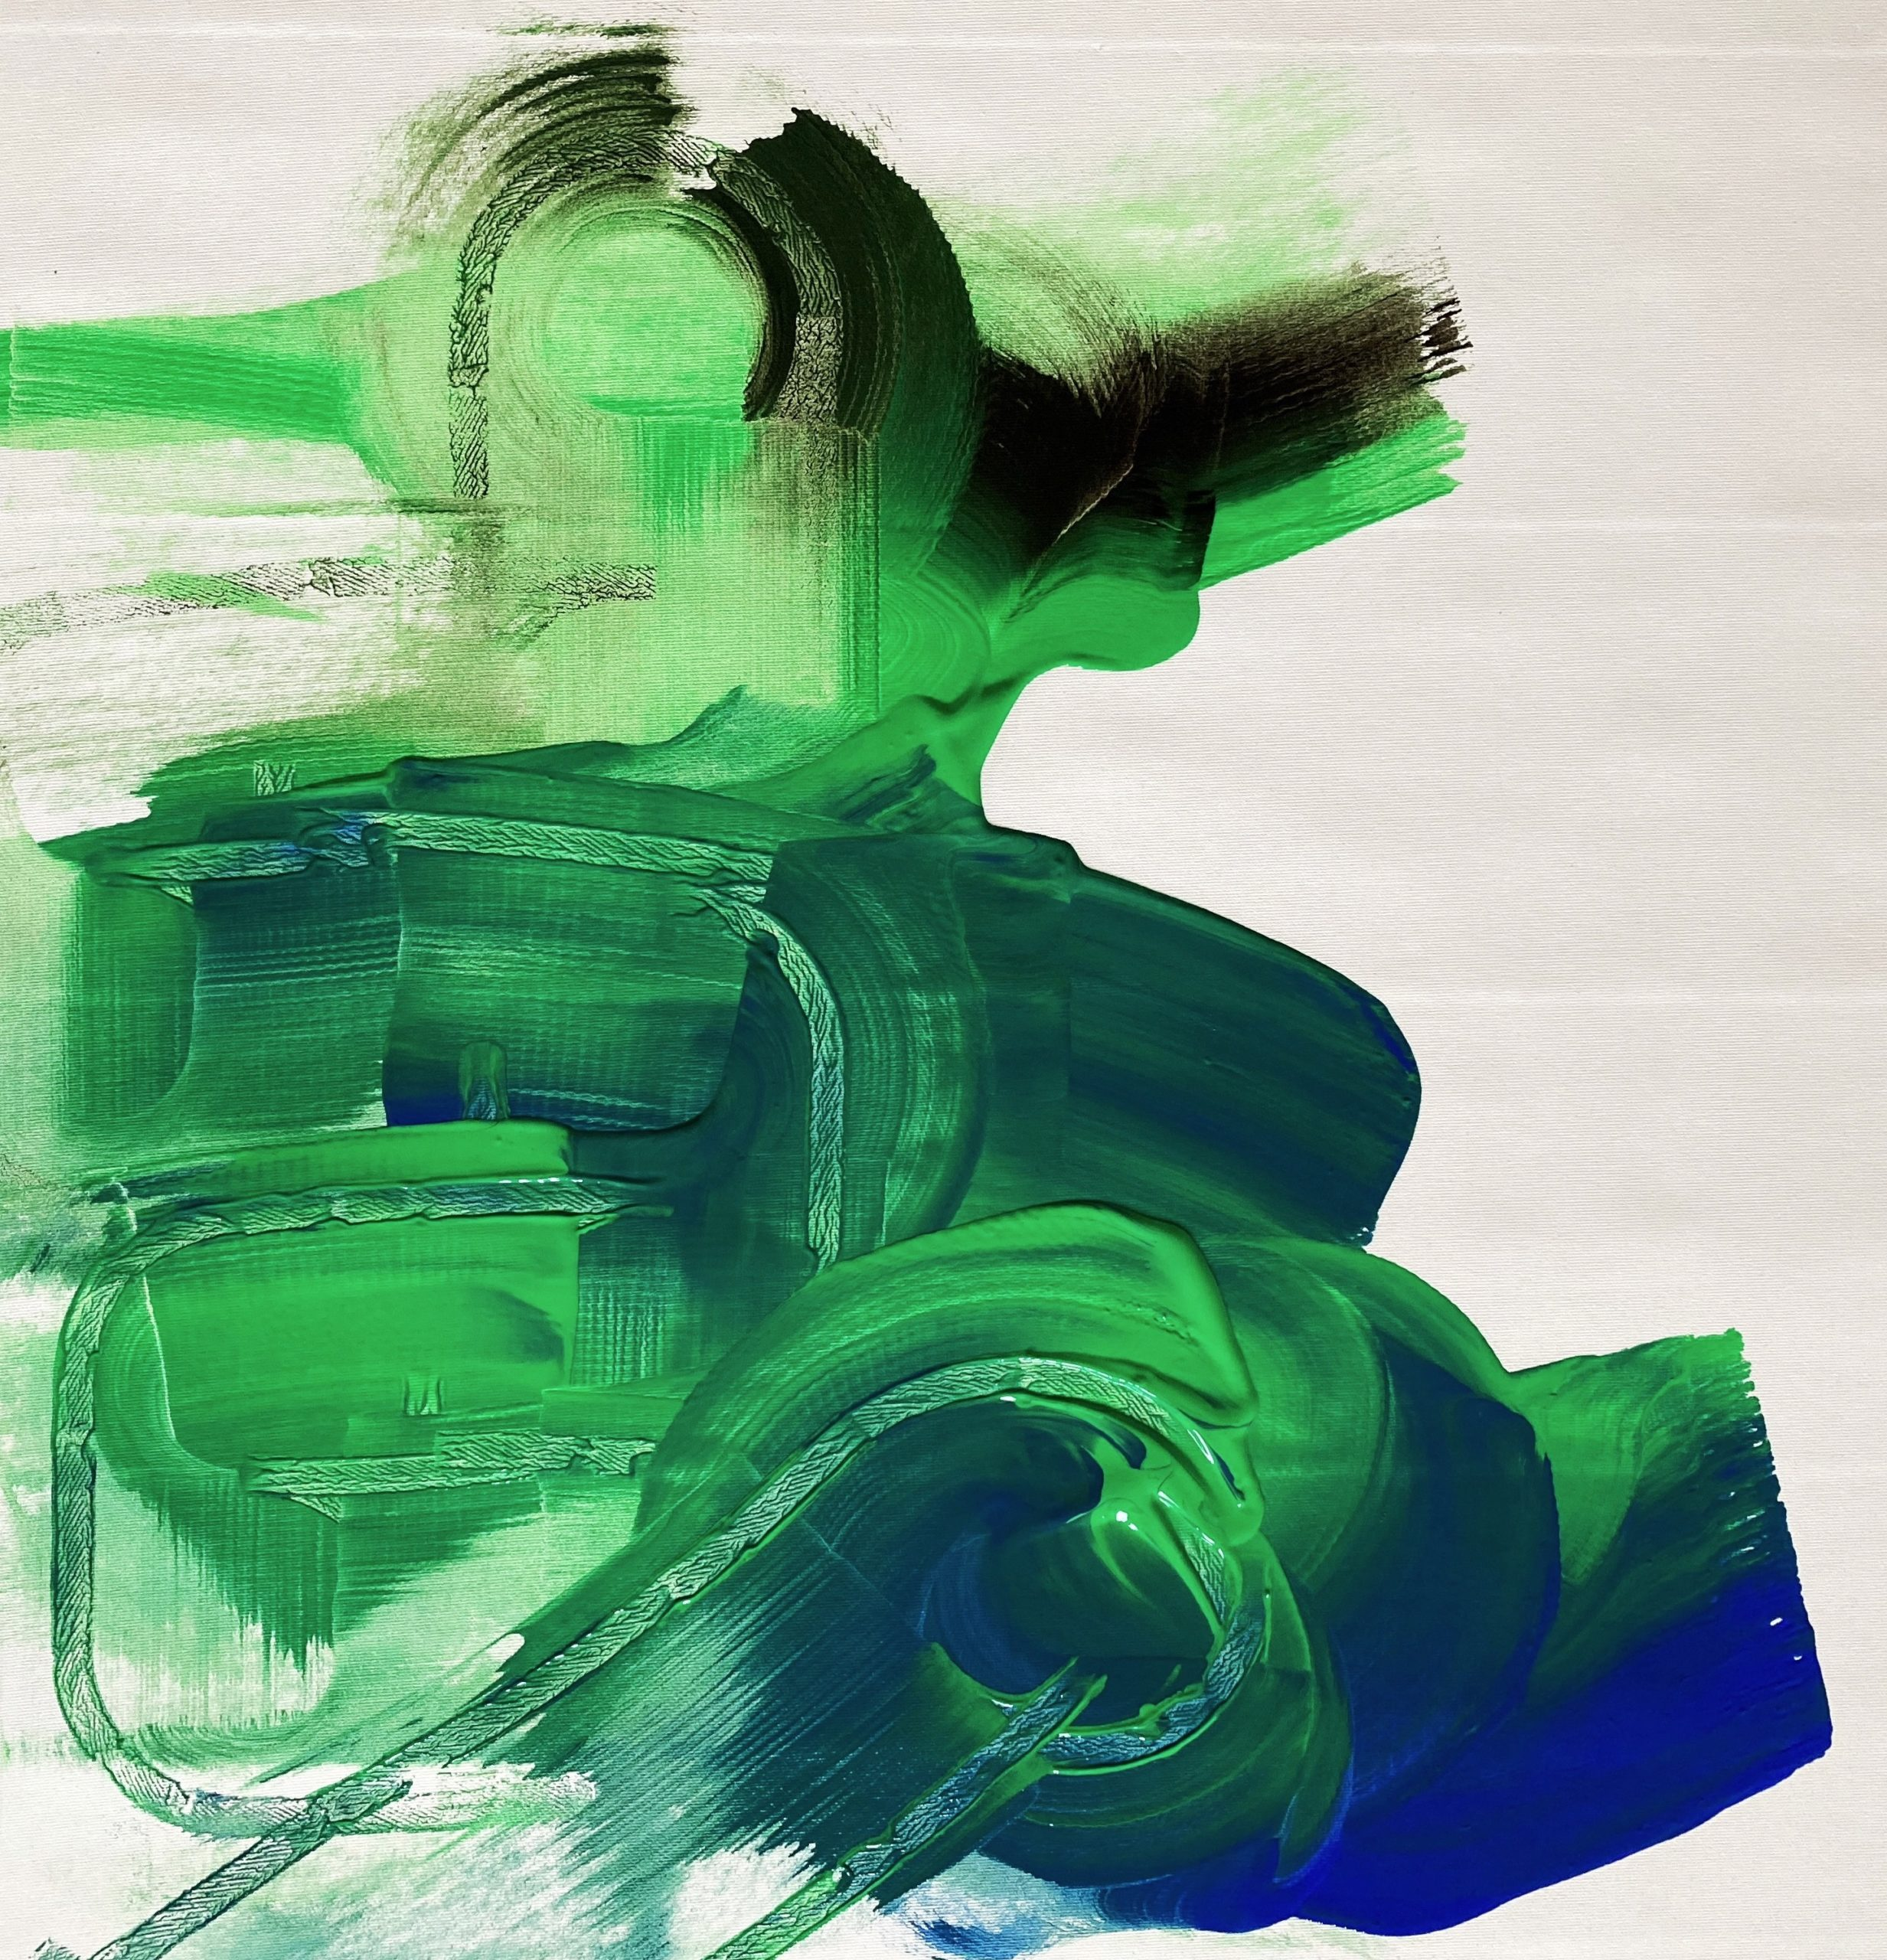 Addie Wagenknecht, All Green, green screen paint, hand sanitizer and Xanax with oil medium on canvas, 74 x 70 cm, 2020